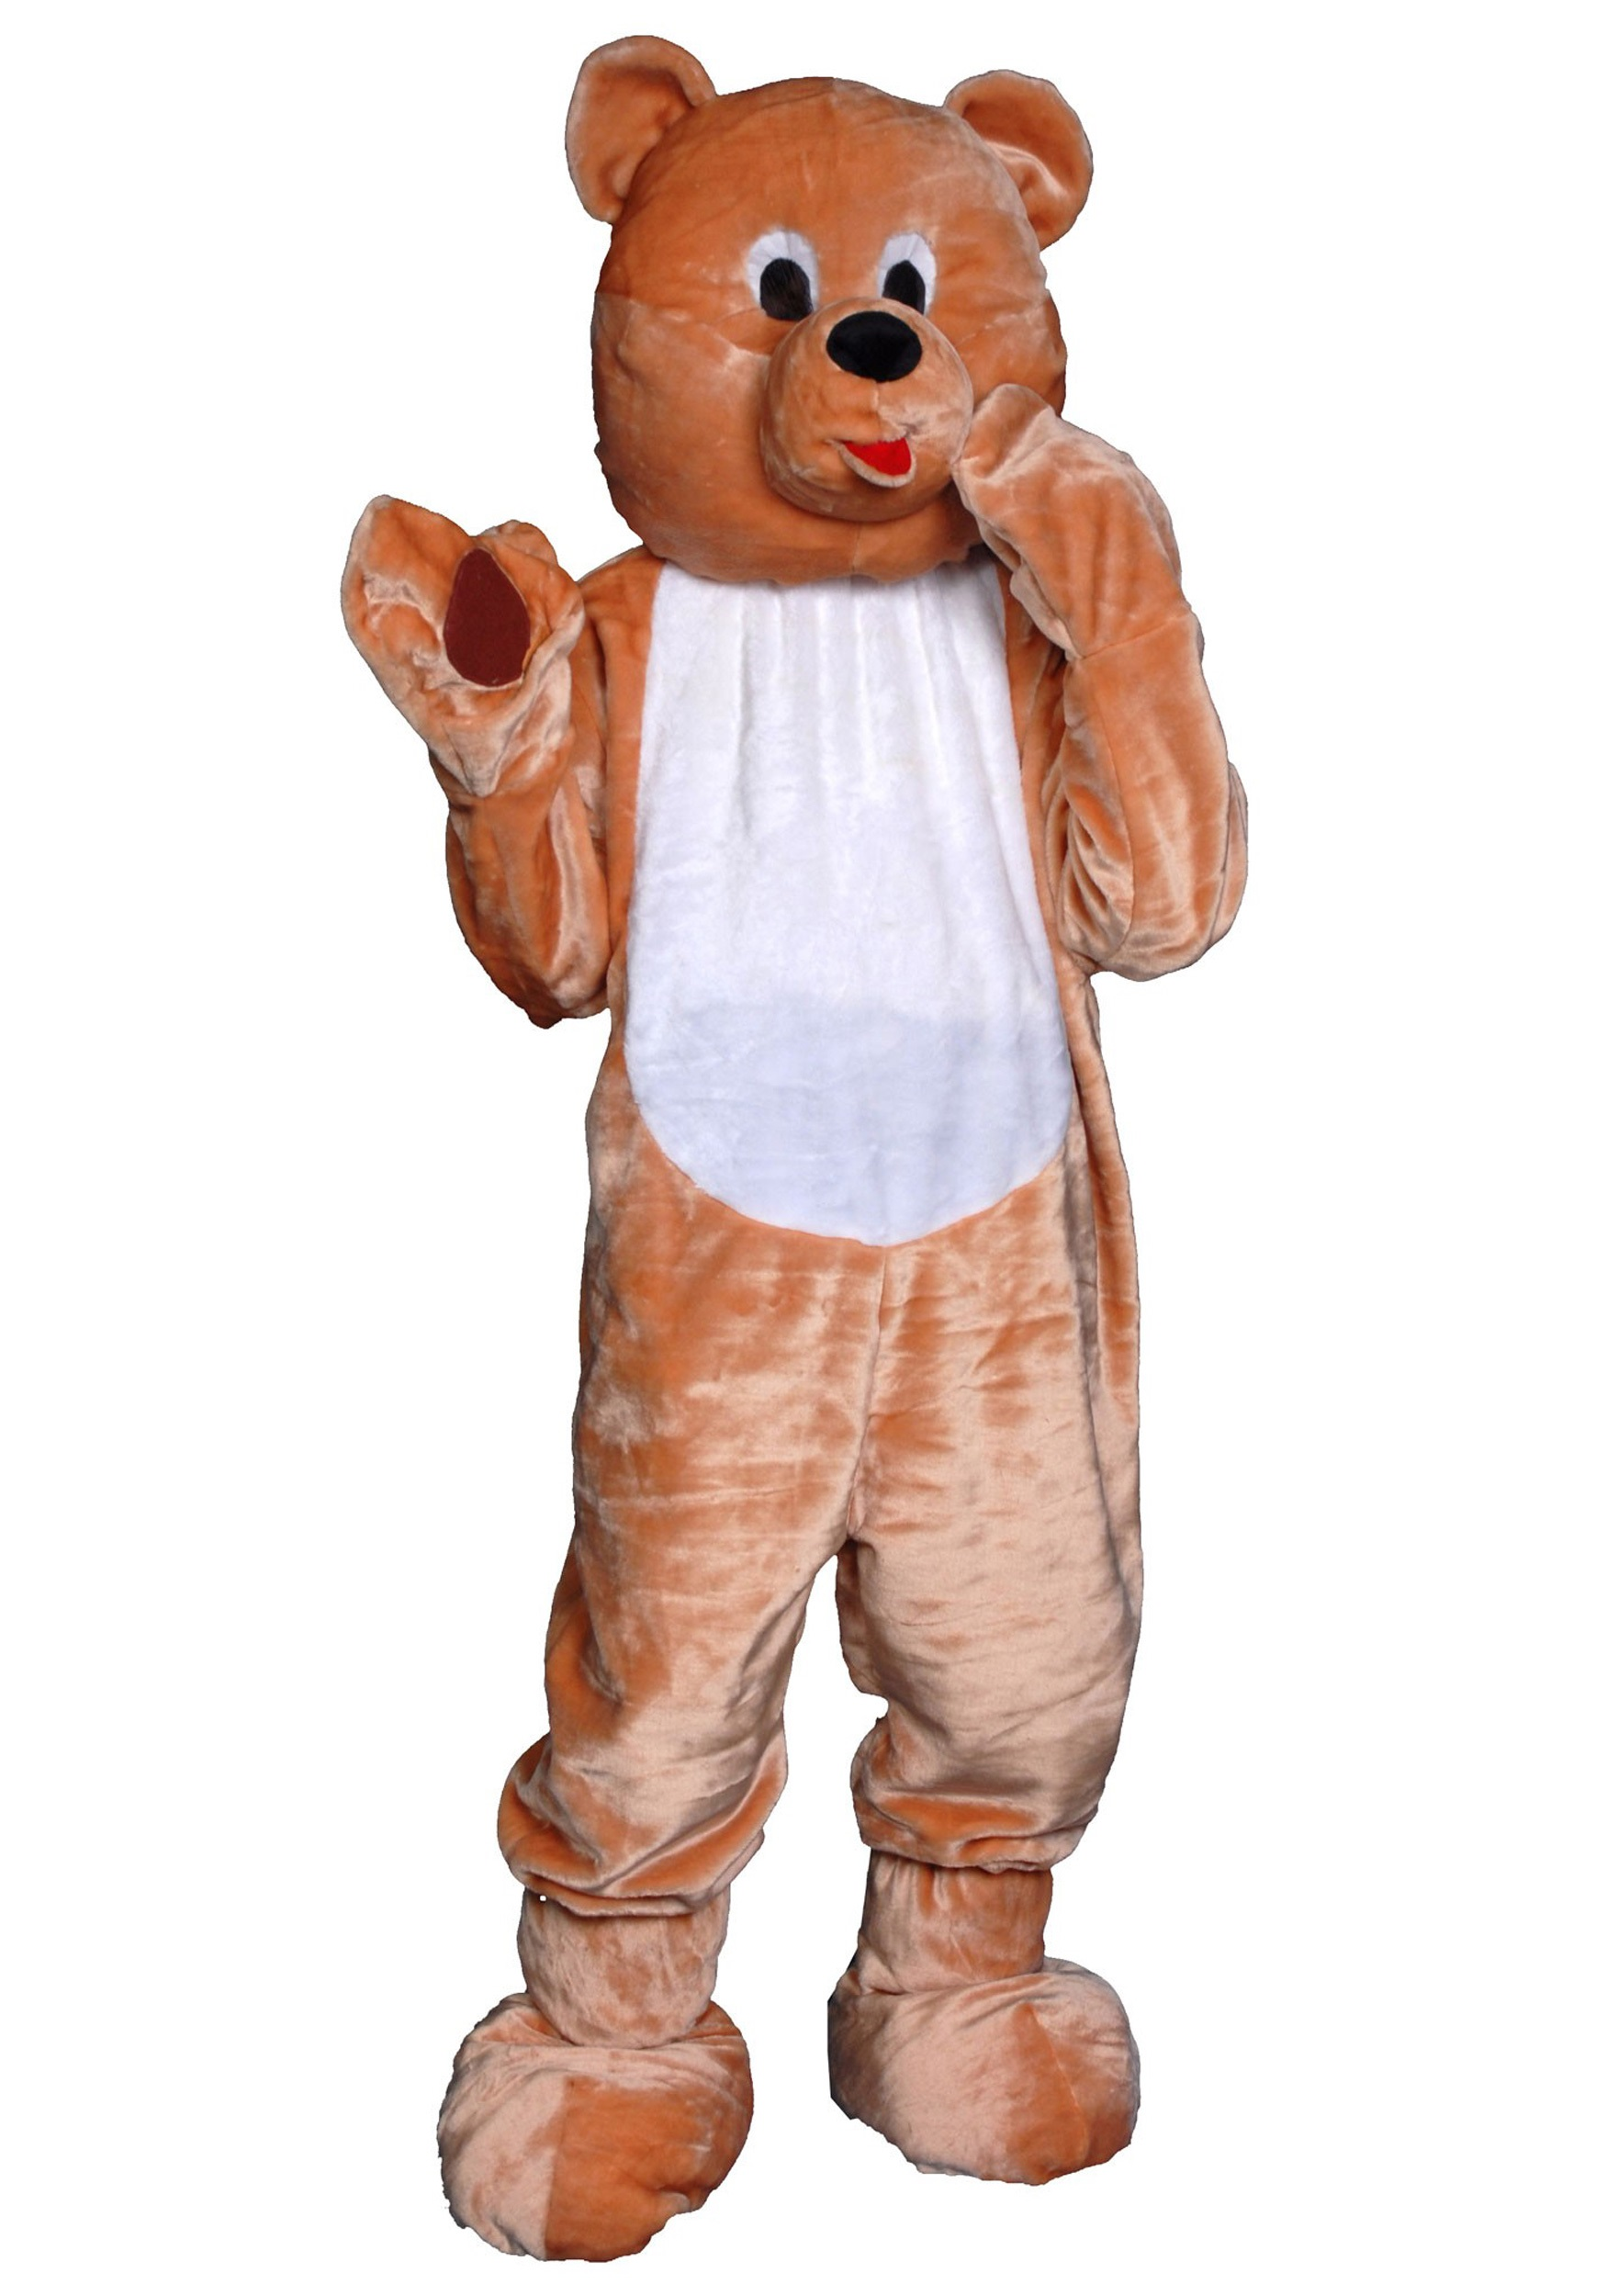 00f264e6f3cb adult-teddy-bear-mascot-costume.jpg